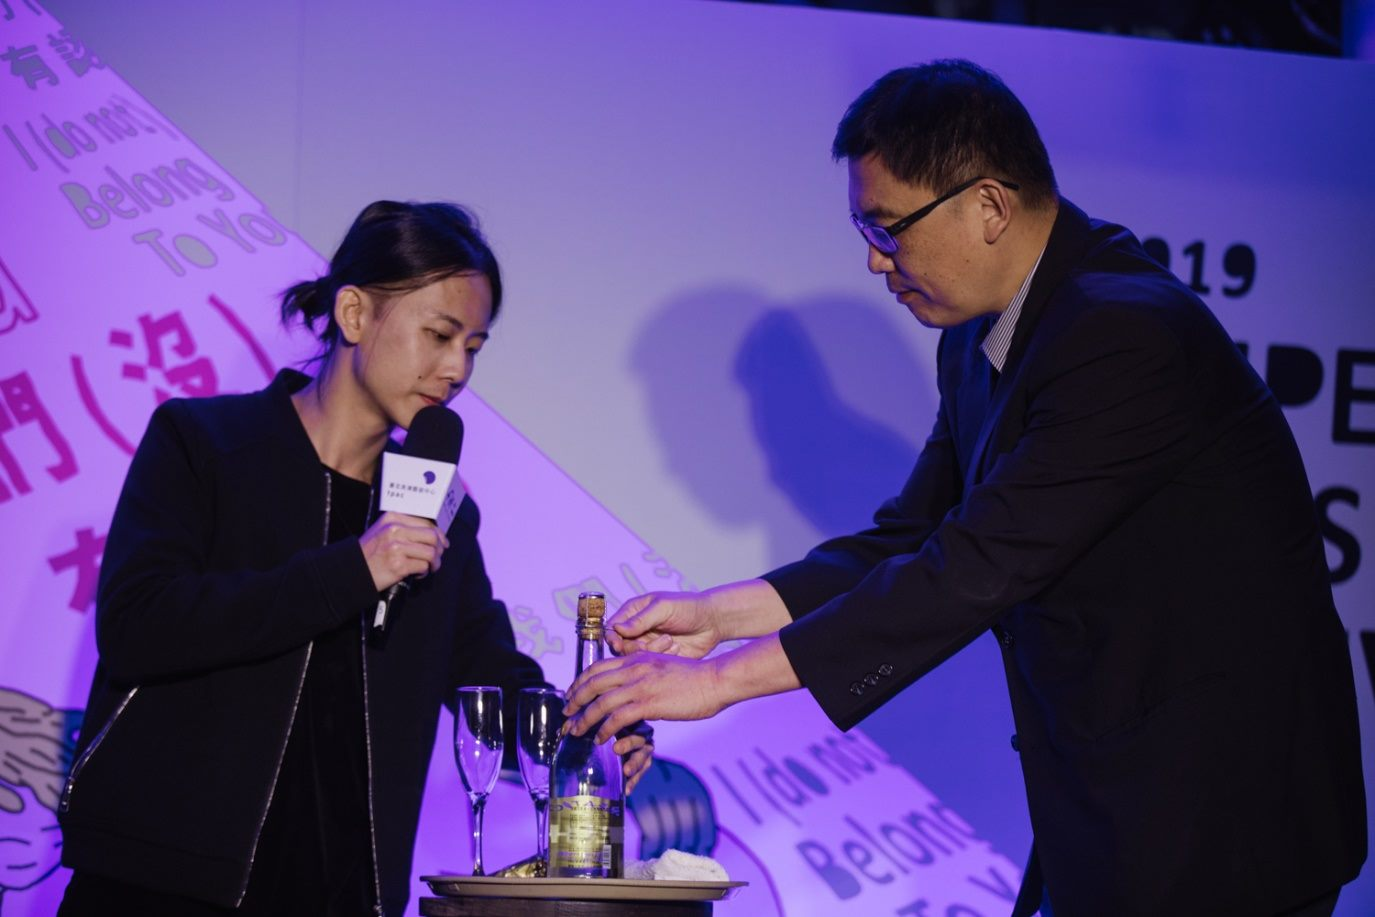 Deputy Director Tian helps artist Zhou Rui-Xiang perform a magic show